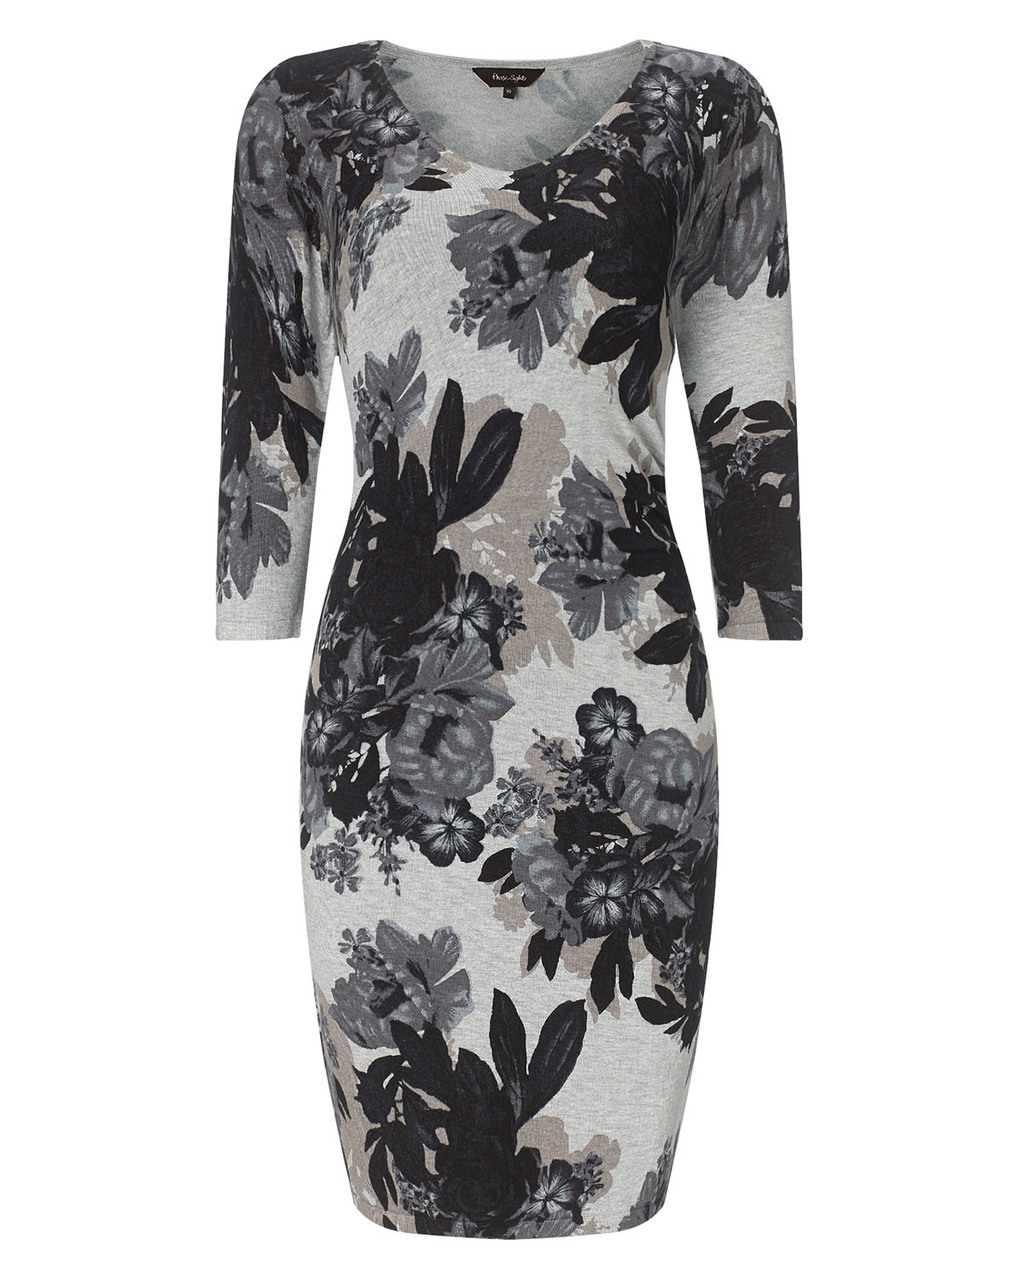 Horley Rose Print Dress - neckline: round neck; fit: tight; style: bodycon; predominant colour: charcoal; secondary colour: light grey; occasions: casual; length: just above the knee; fibres: nylon - mix; sleeve length: 3/4 length; sleeve style: standard; texture group: knits/crochet; pattern type: knitted - fine stitch; pattern size: big & busy; pattern: florals; season: a/w 2015; wardrobe: highlight